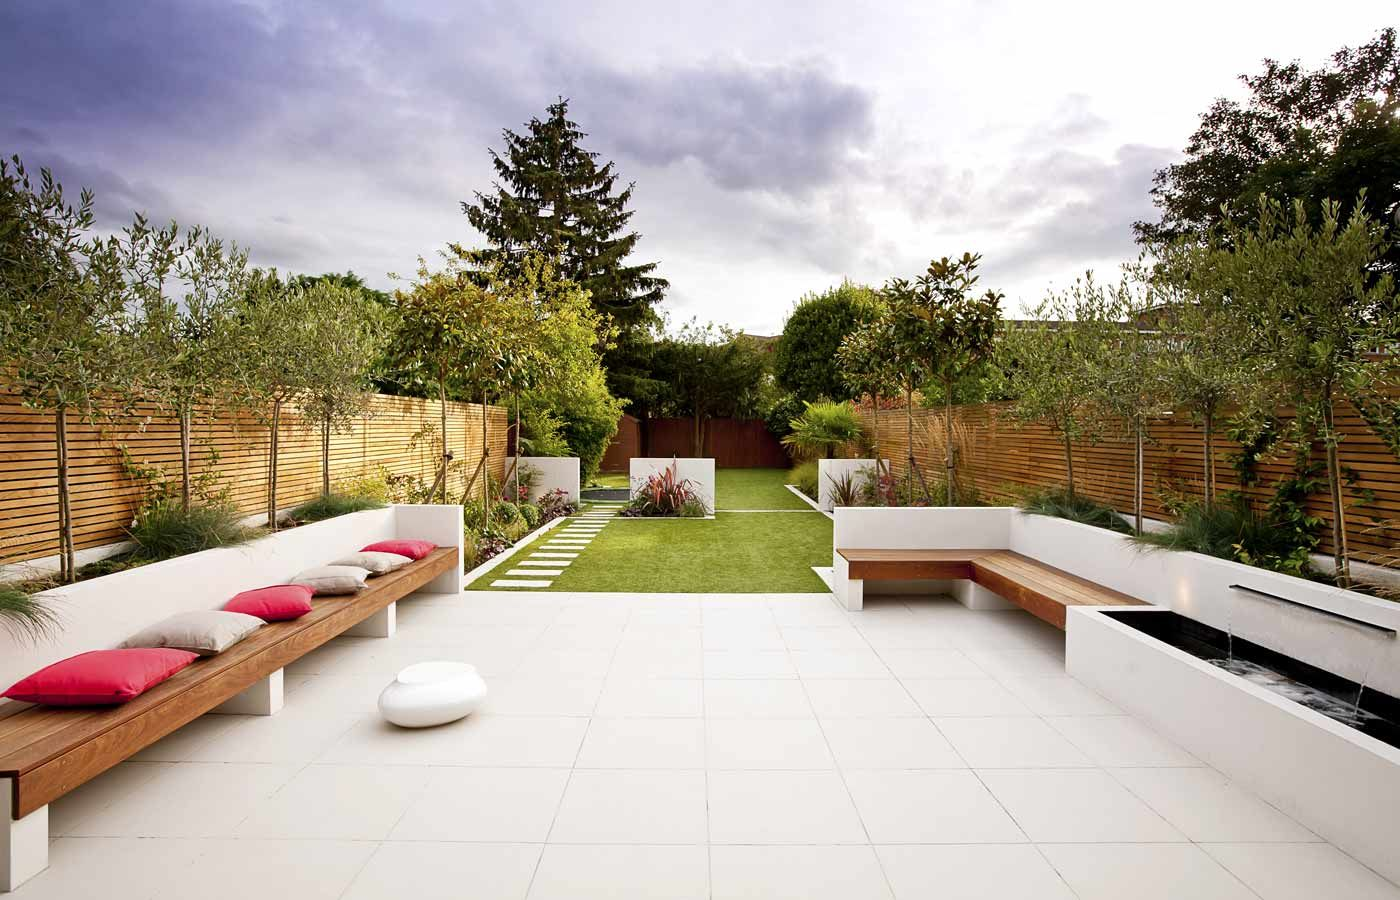 Garden design plans for long garden image17 rzuty for Long thin garden designs